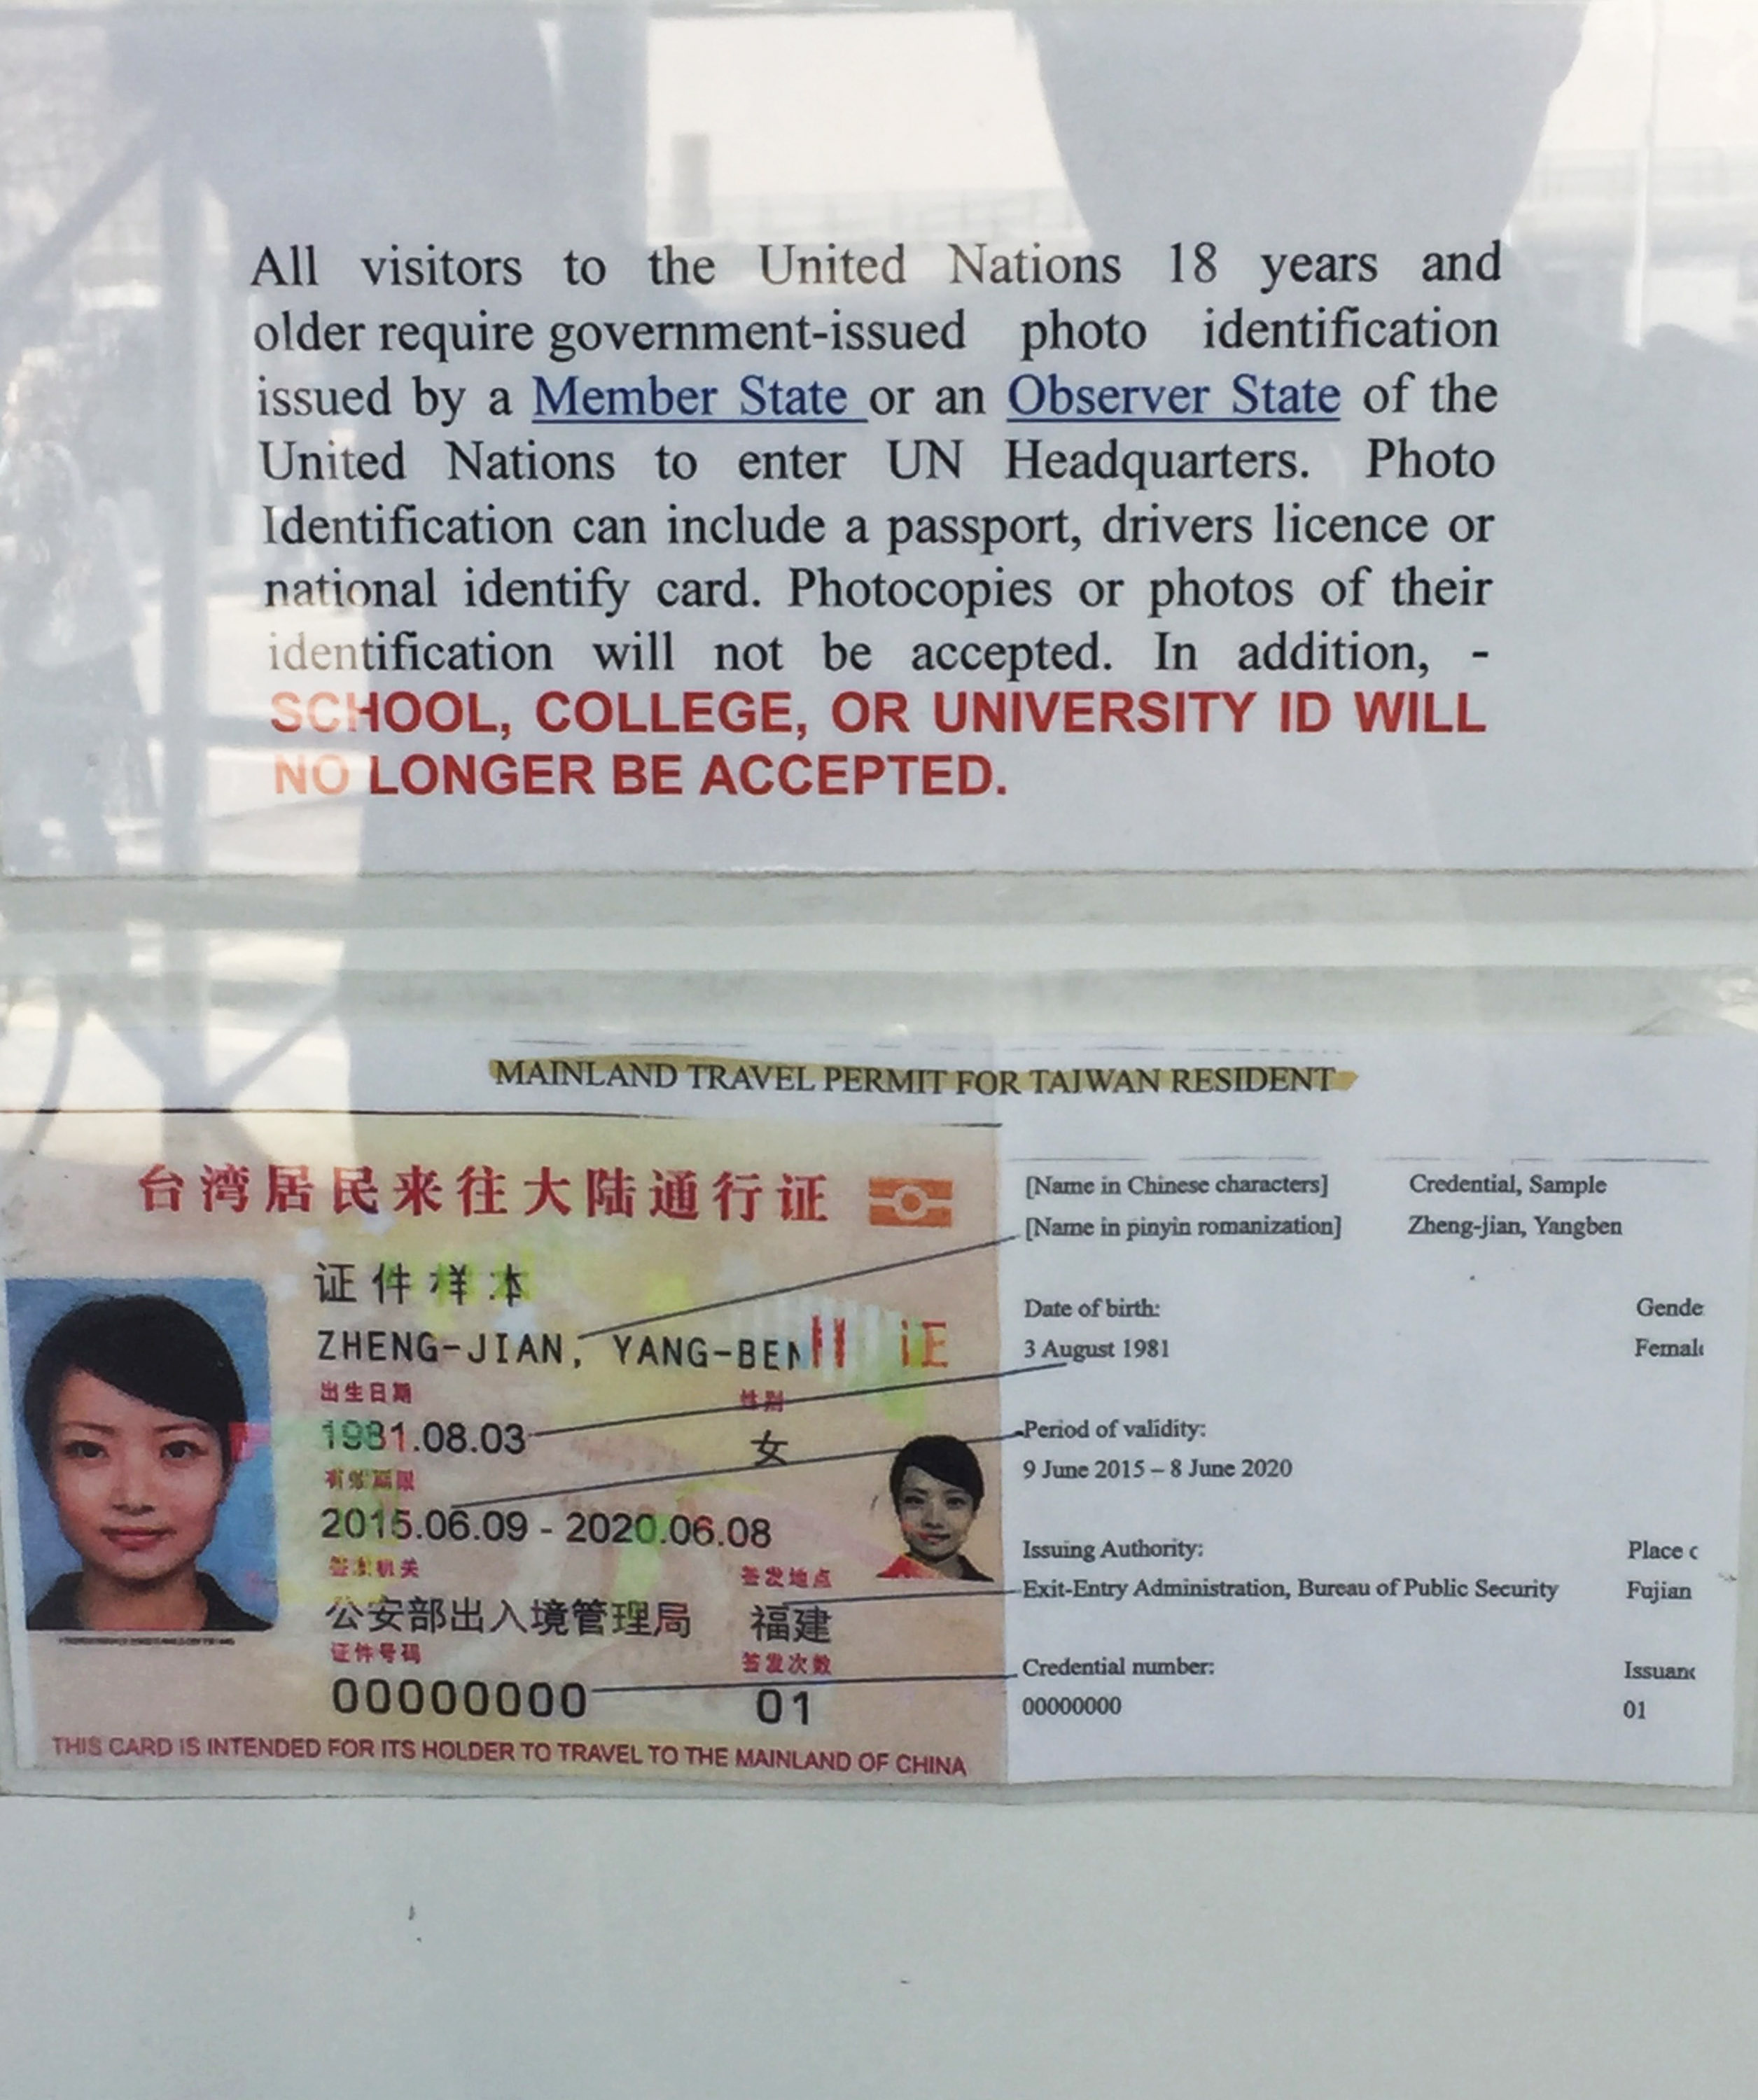 Taiwanese citizens are only allowed to visit UN premises in New York with documents issued by China.